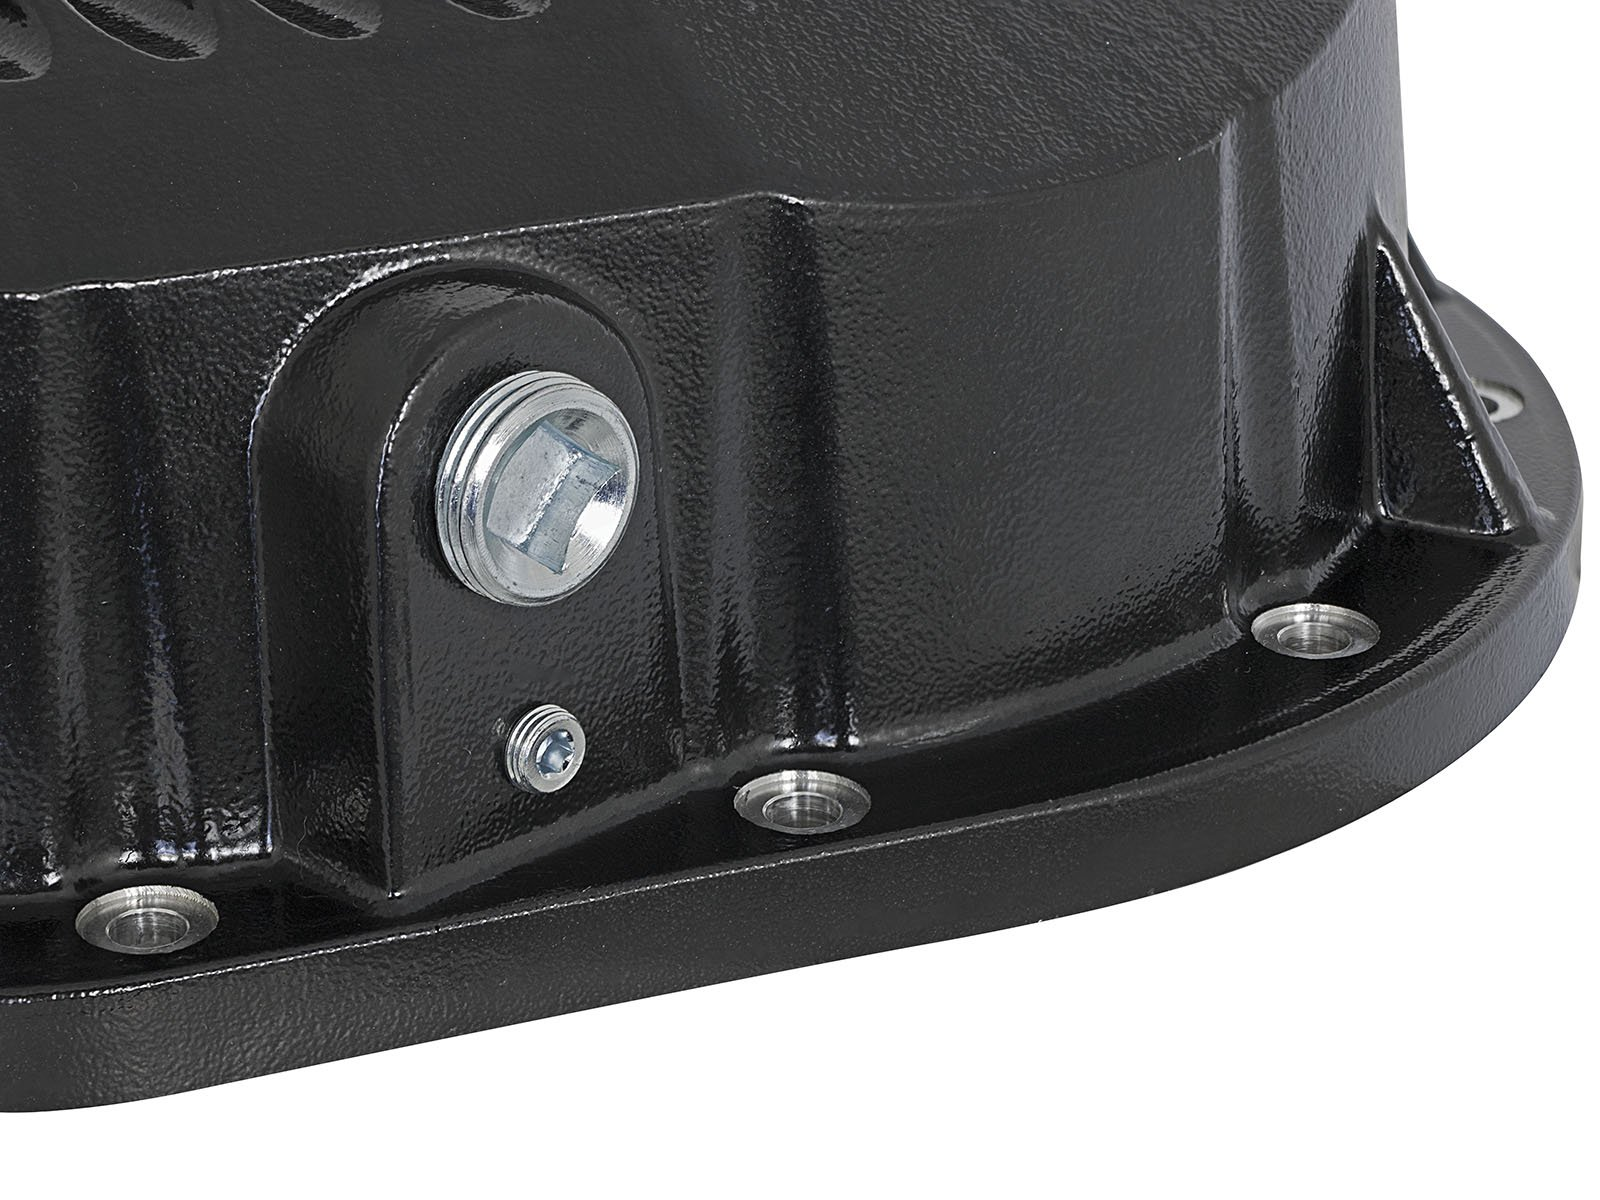 aFe Power 46-70022-WL Pro Series Machined Rear Differential Cover with Gear Oil by aFe Power (Image #5)